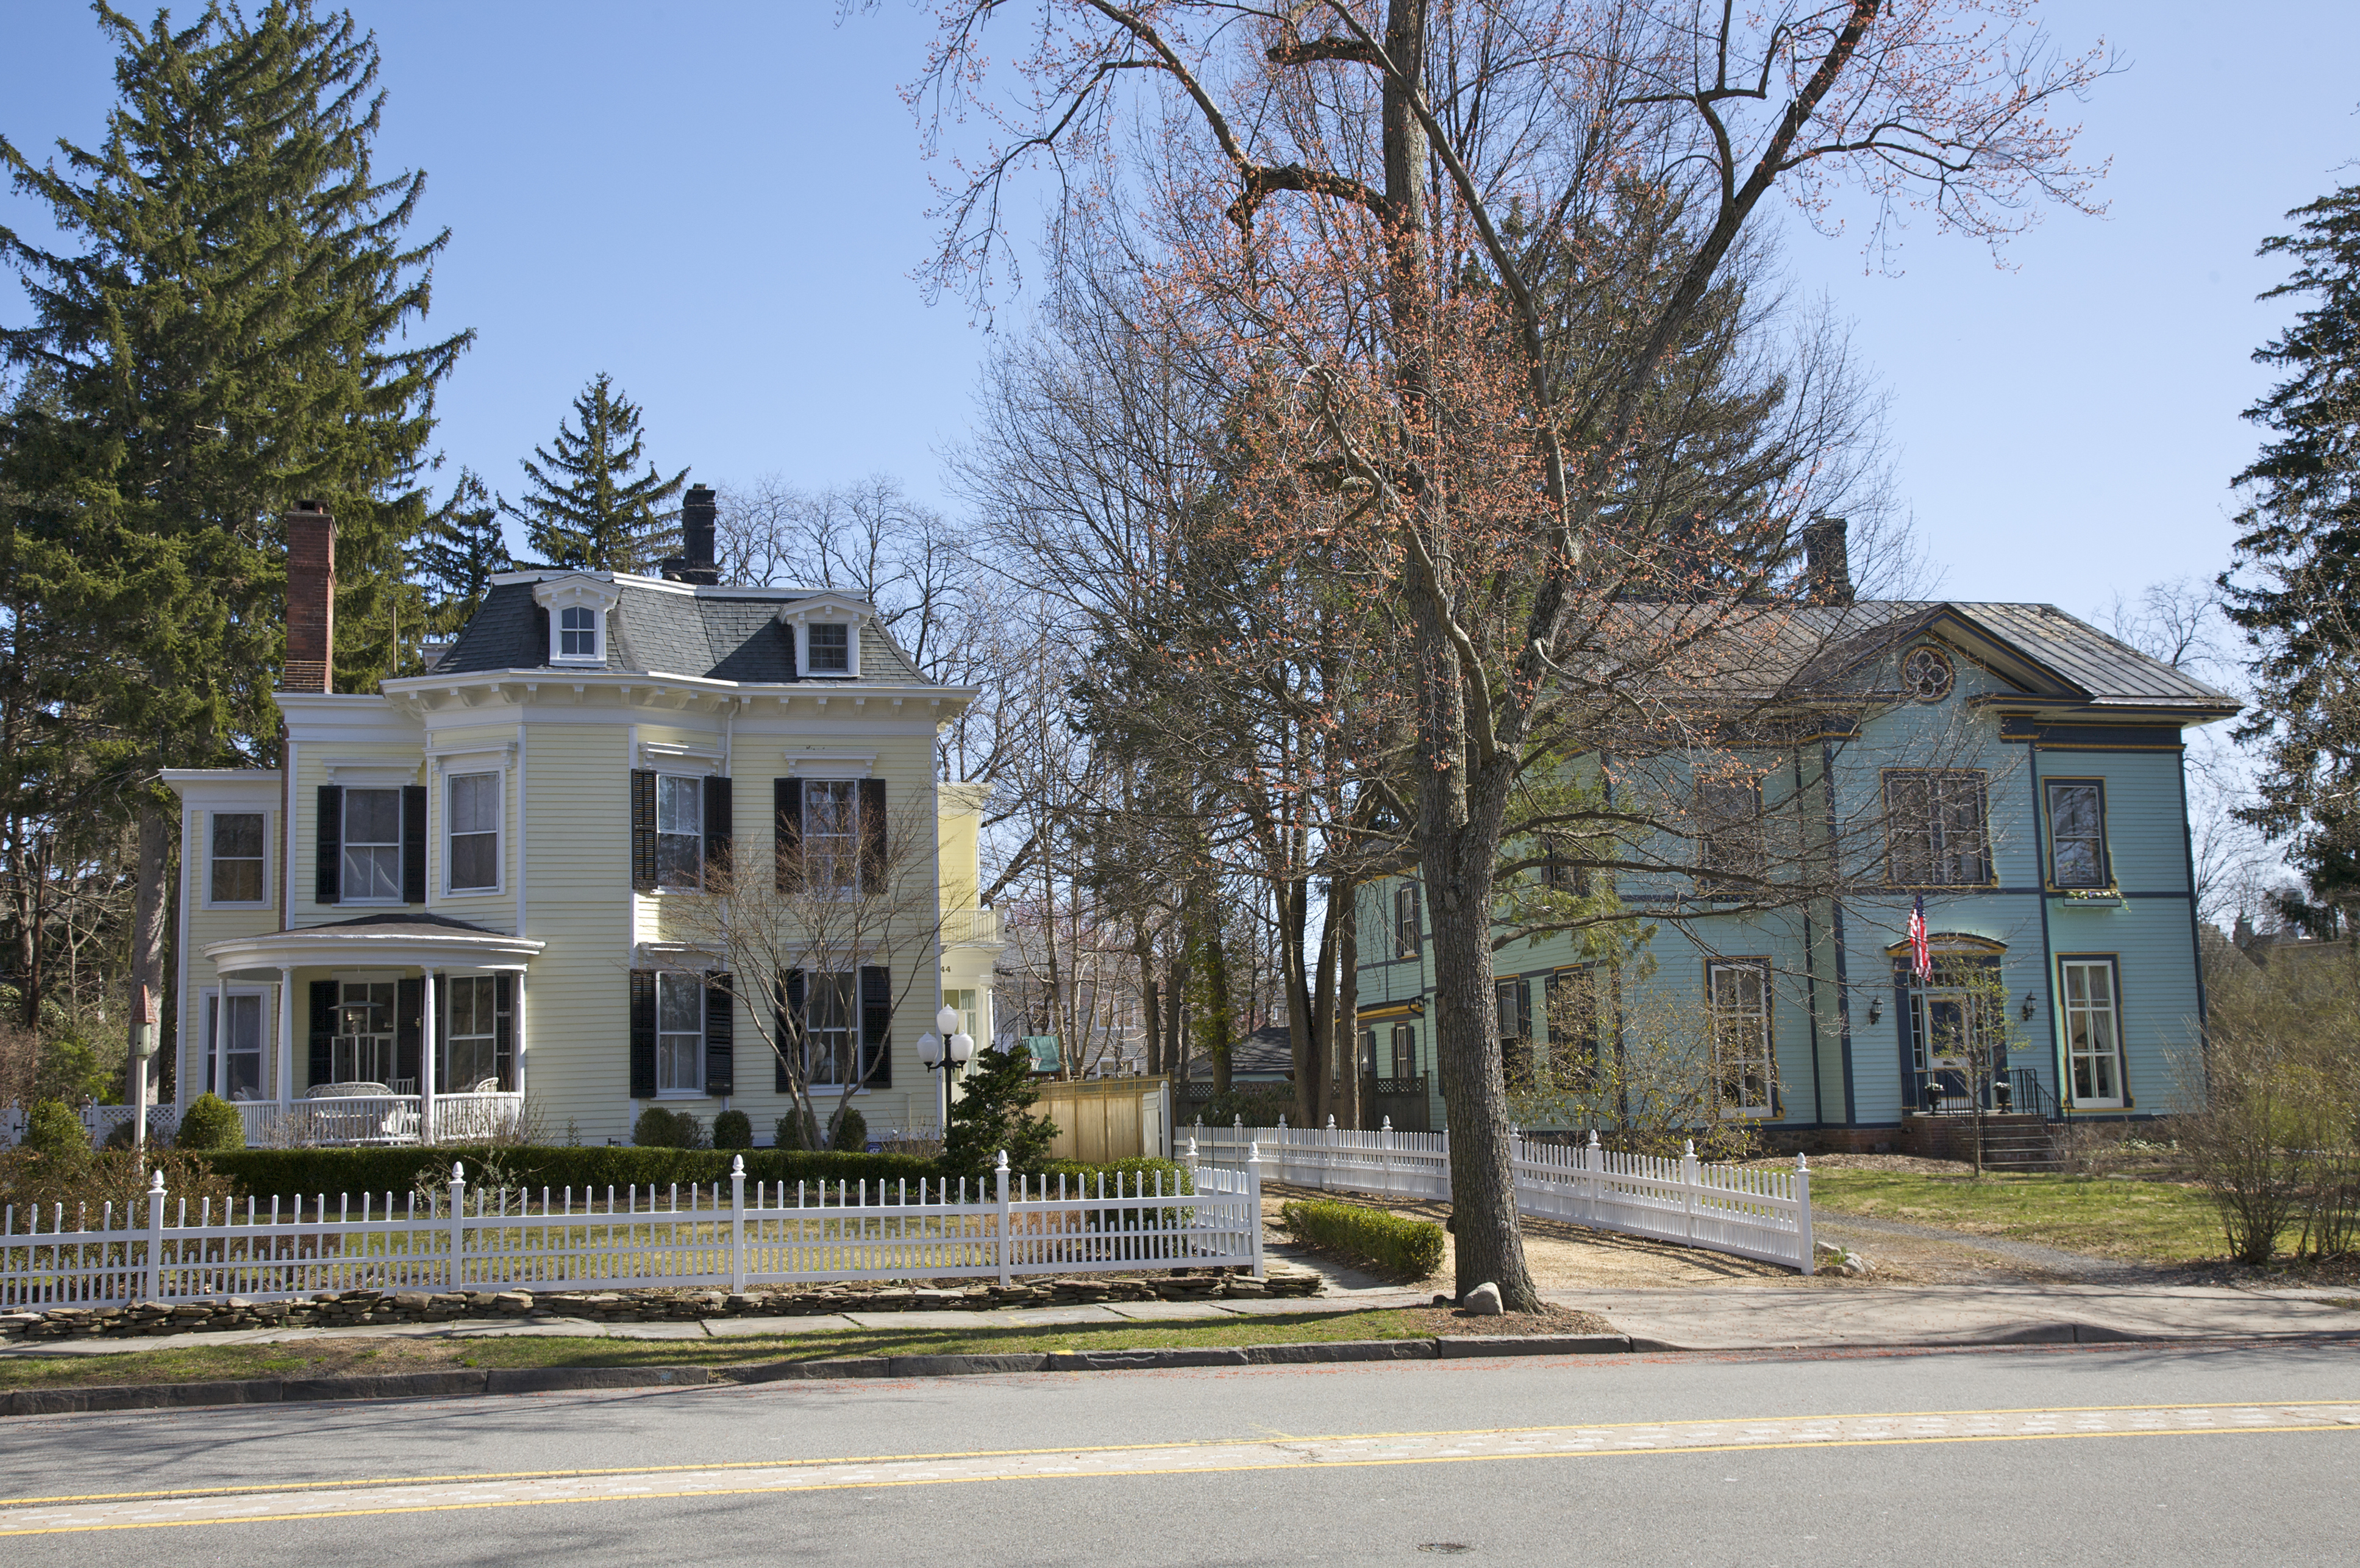 Historic homes, Morristown, Morris County, New Jersey, USA, March 2010